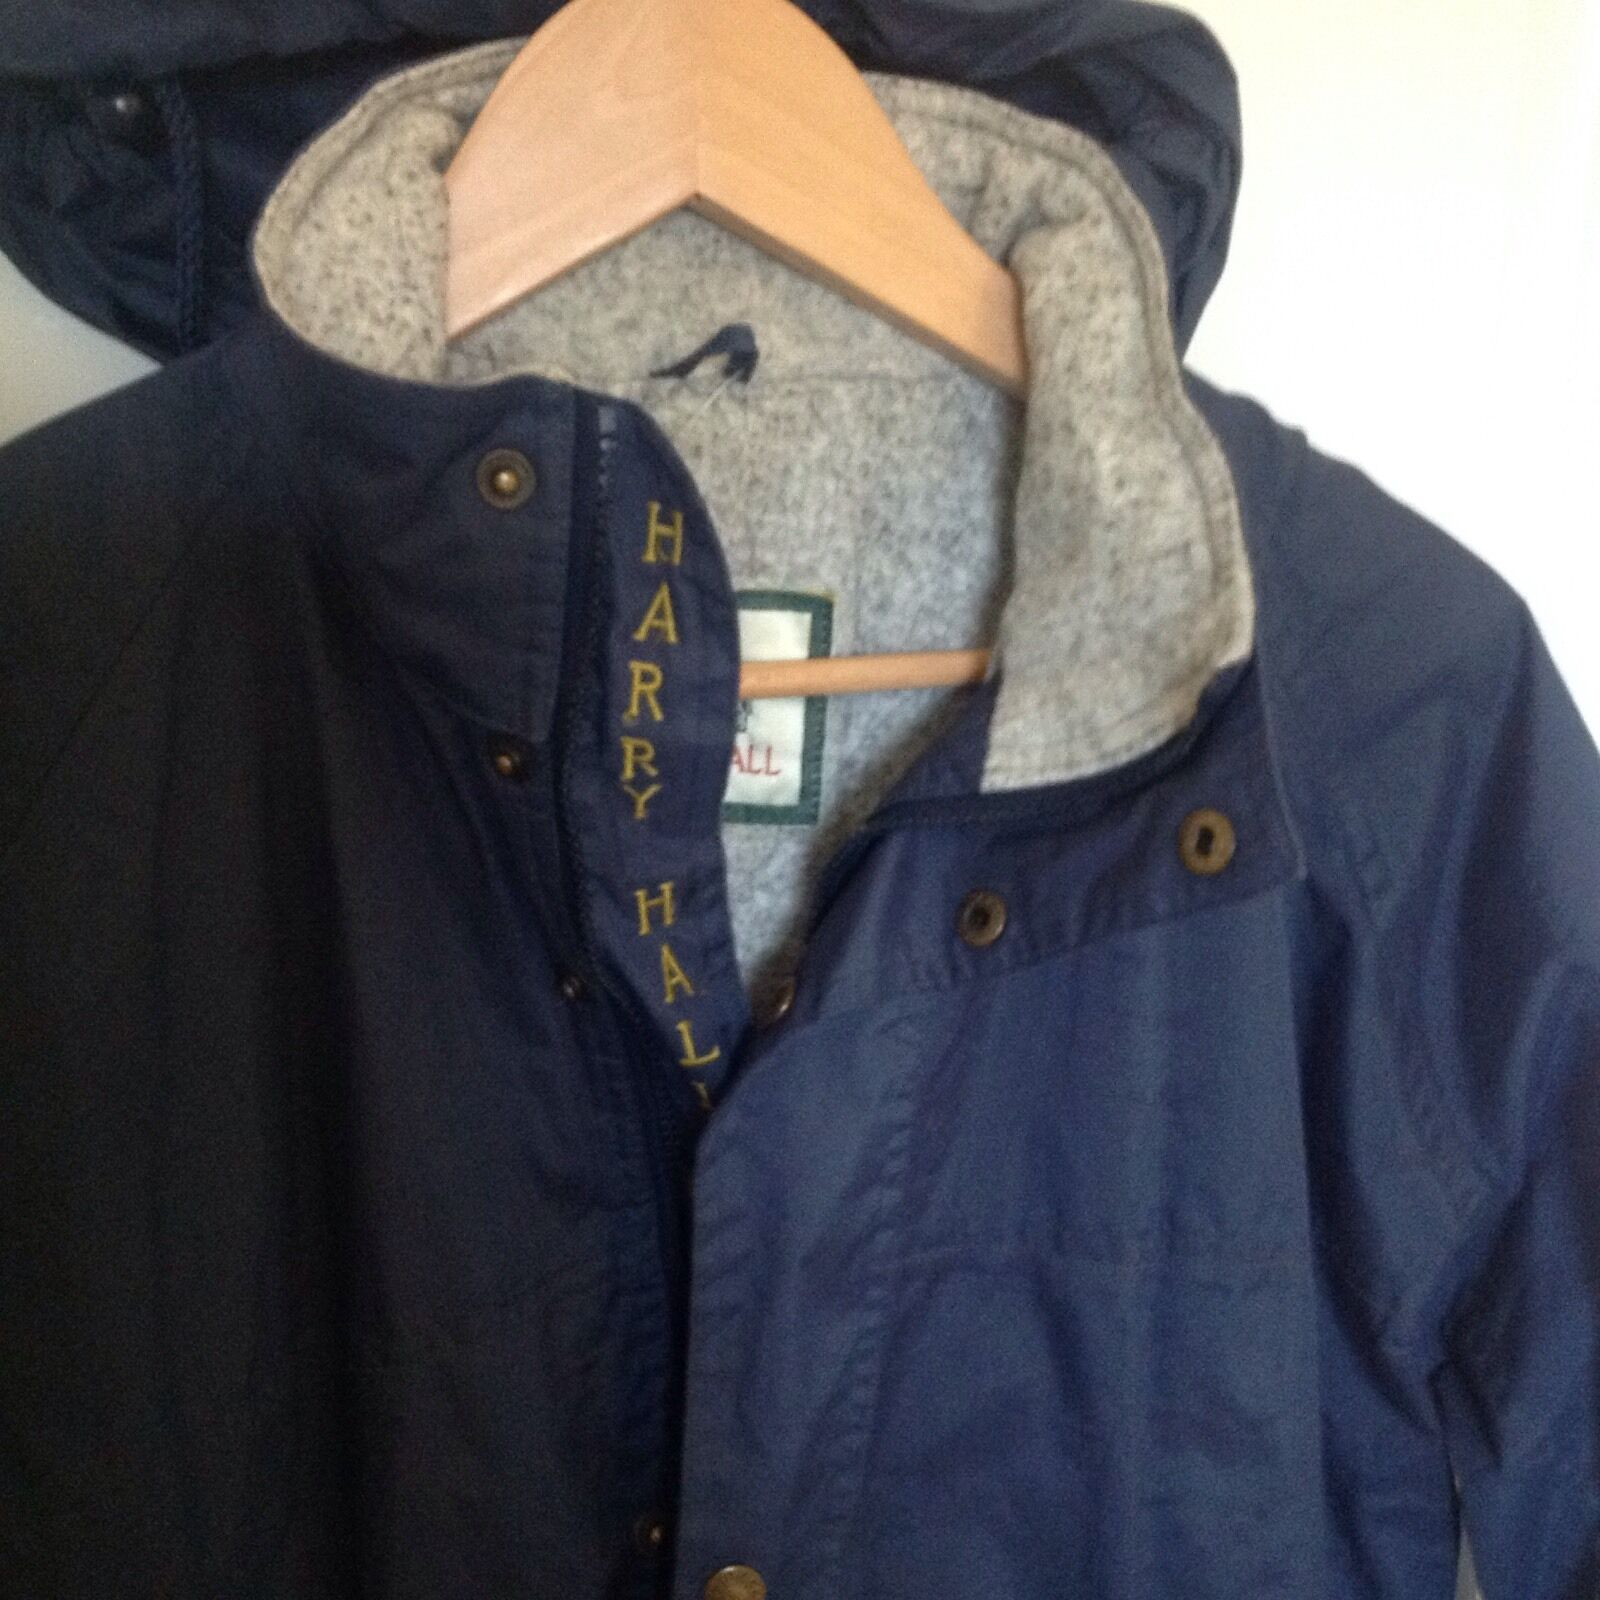 Mens Harry Hall Coat Size M